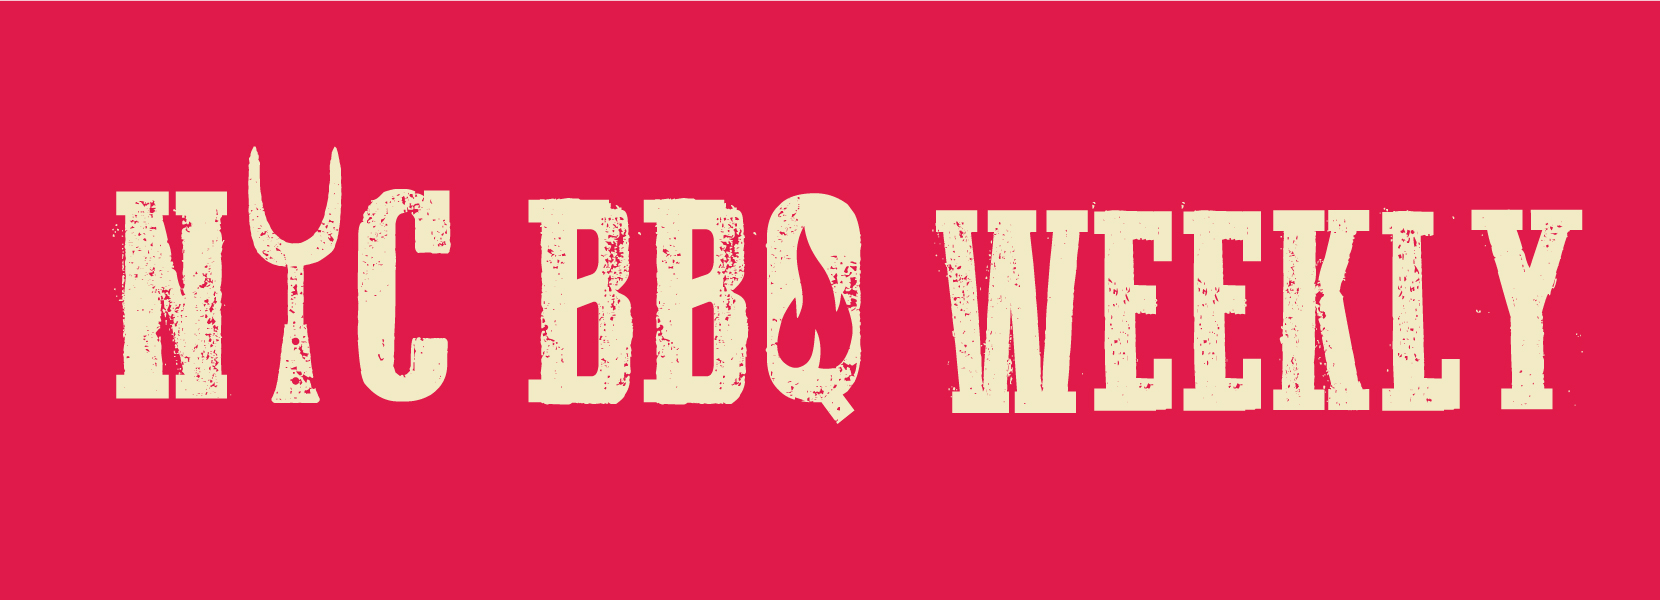 NYCBBQ-Weekly-Newsletter.jpg